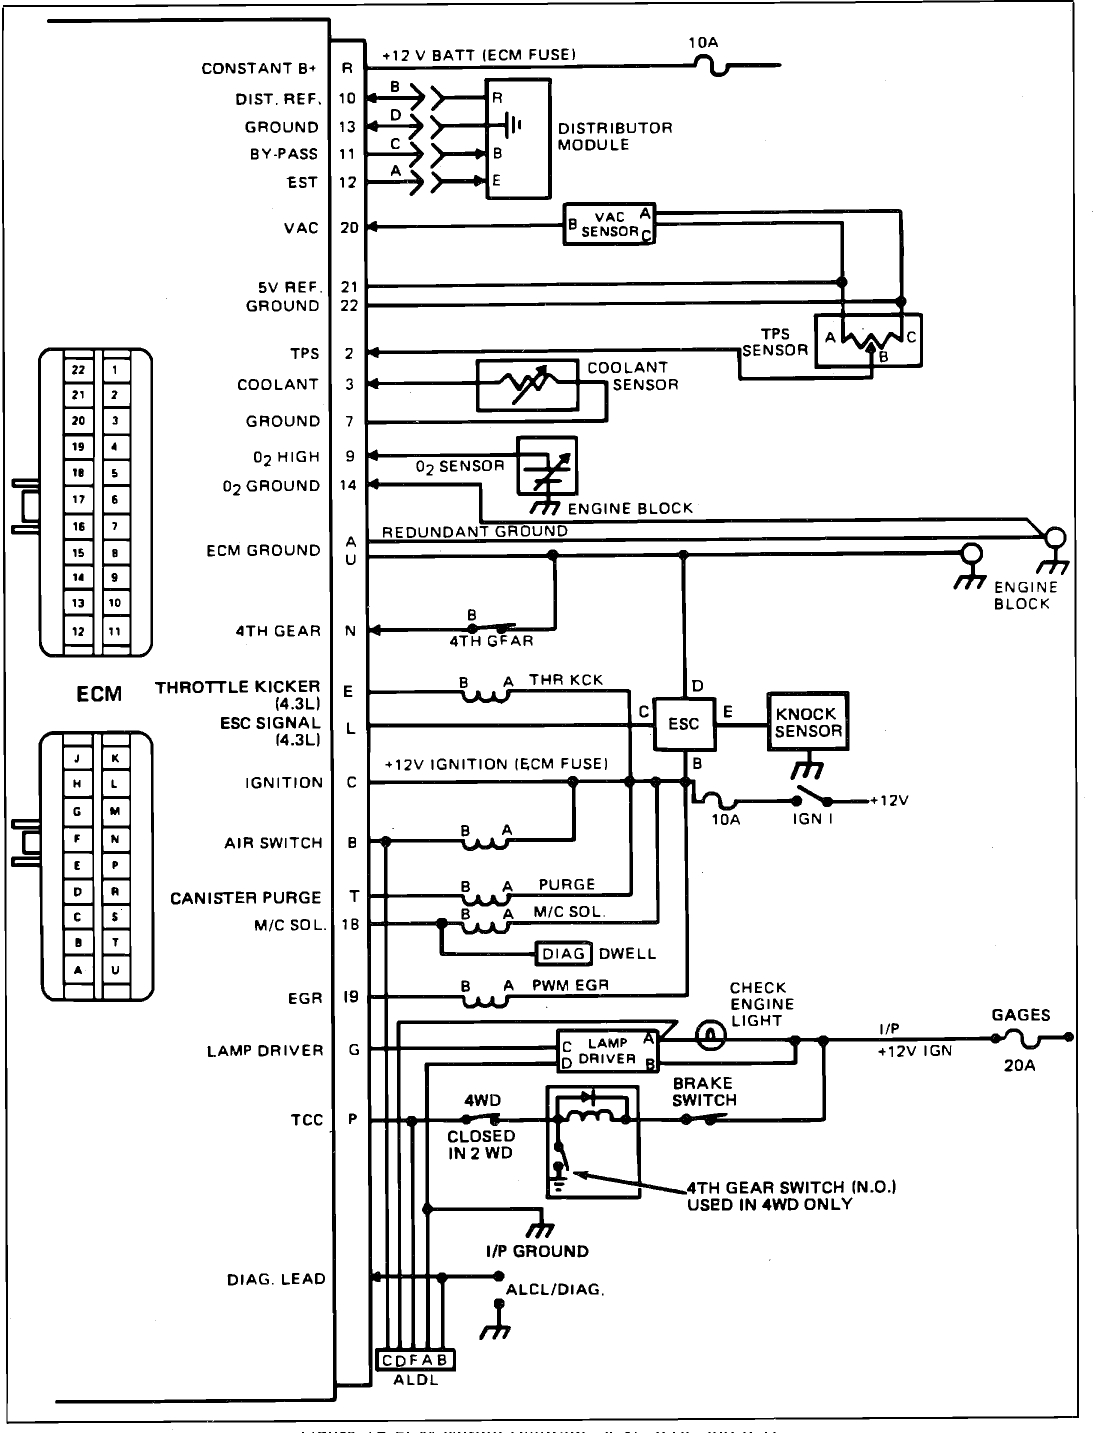 2003 Chevy Express Van 3500 Wiring | Schematic Diagram on 2004 chevy 3500 wiring diagram, 2000 chevy 3500 wiring diagram, 1998 chevy 3500 wiring diagram, 1993 chevy 3500 wiring diagram, 2007 chevy 3500 wiring diagram,